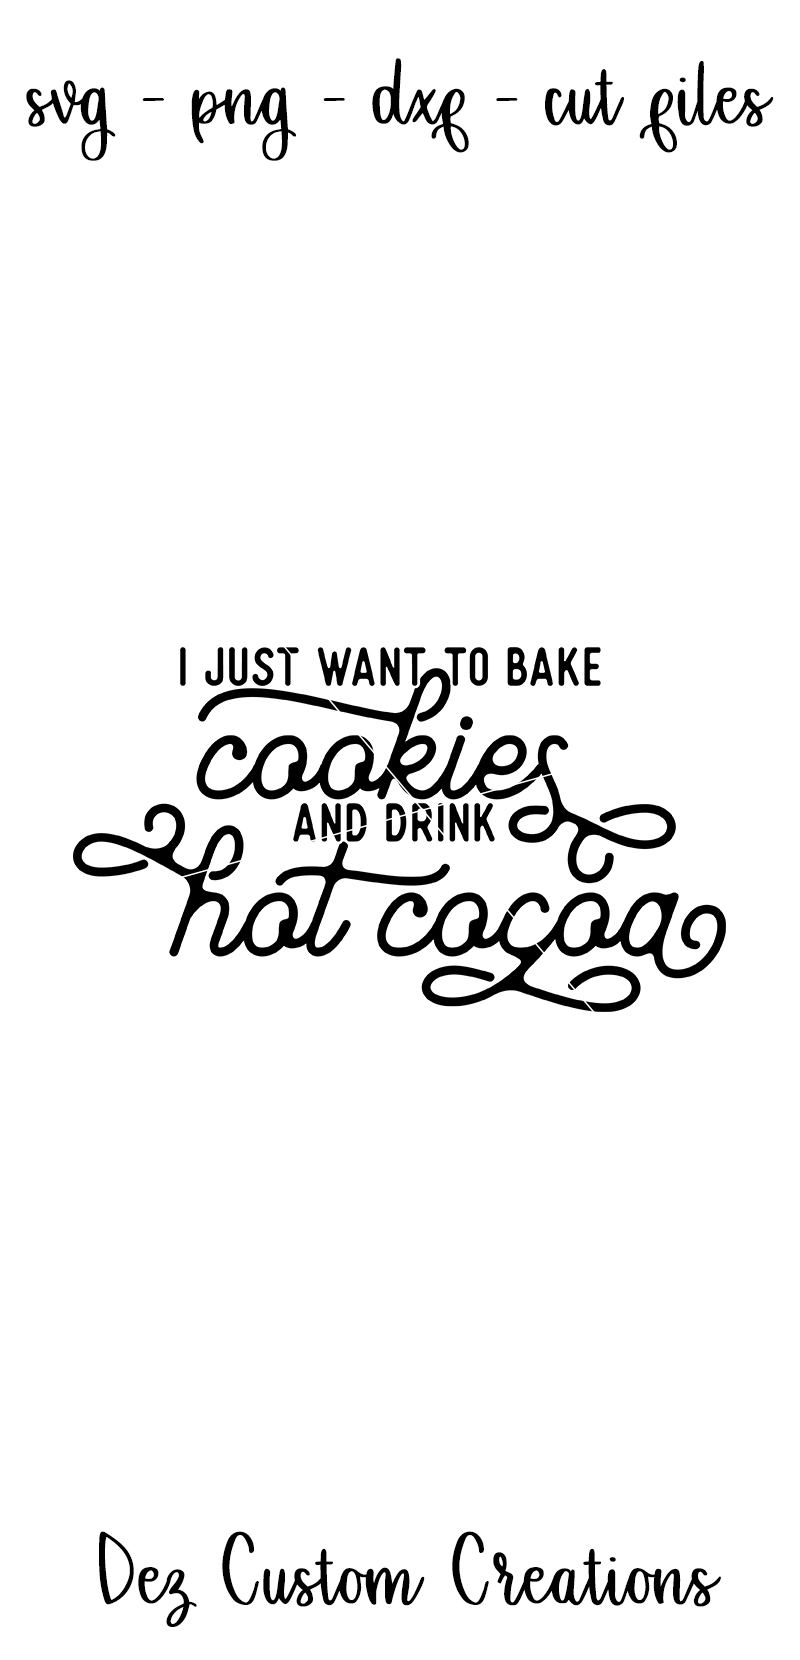 I Just Want to Bake Cookies and Drink Hot Cocoa - SVG example image 3